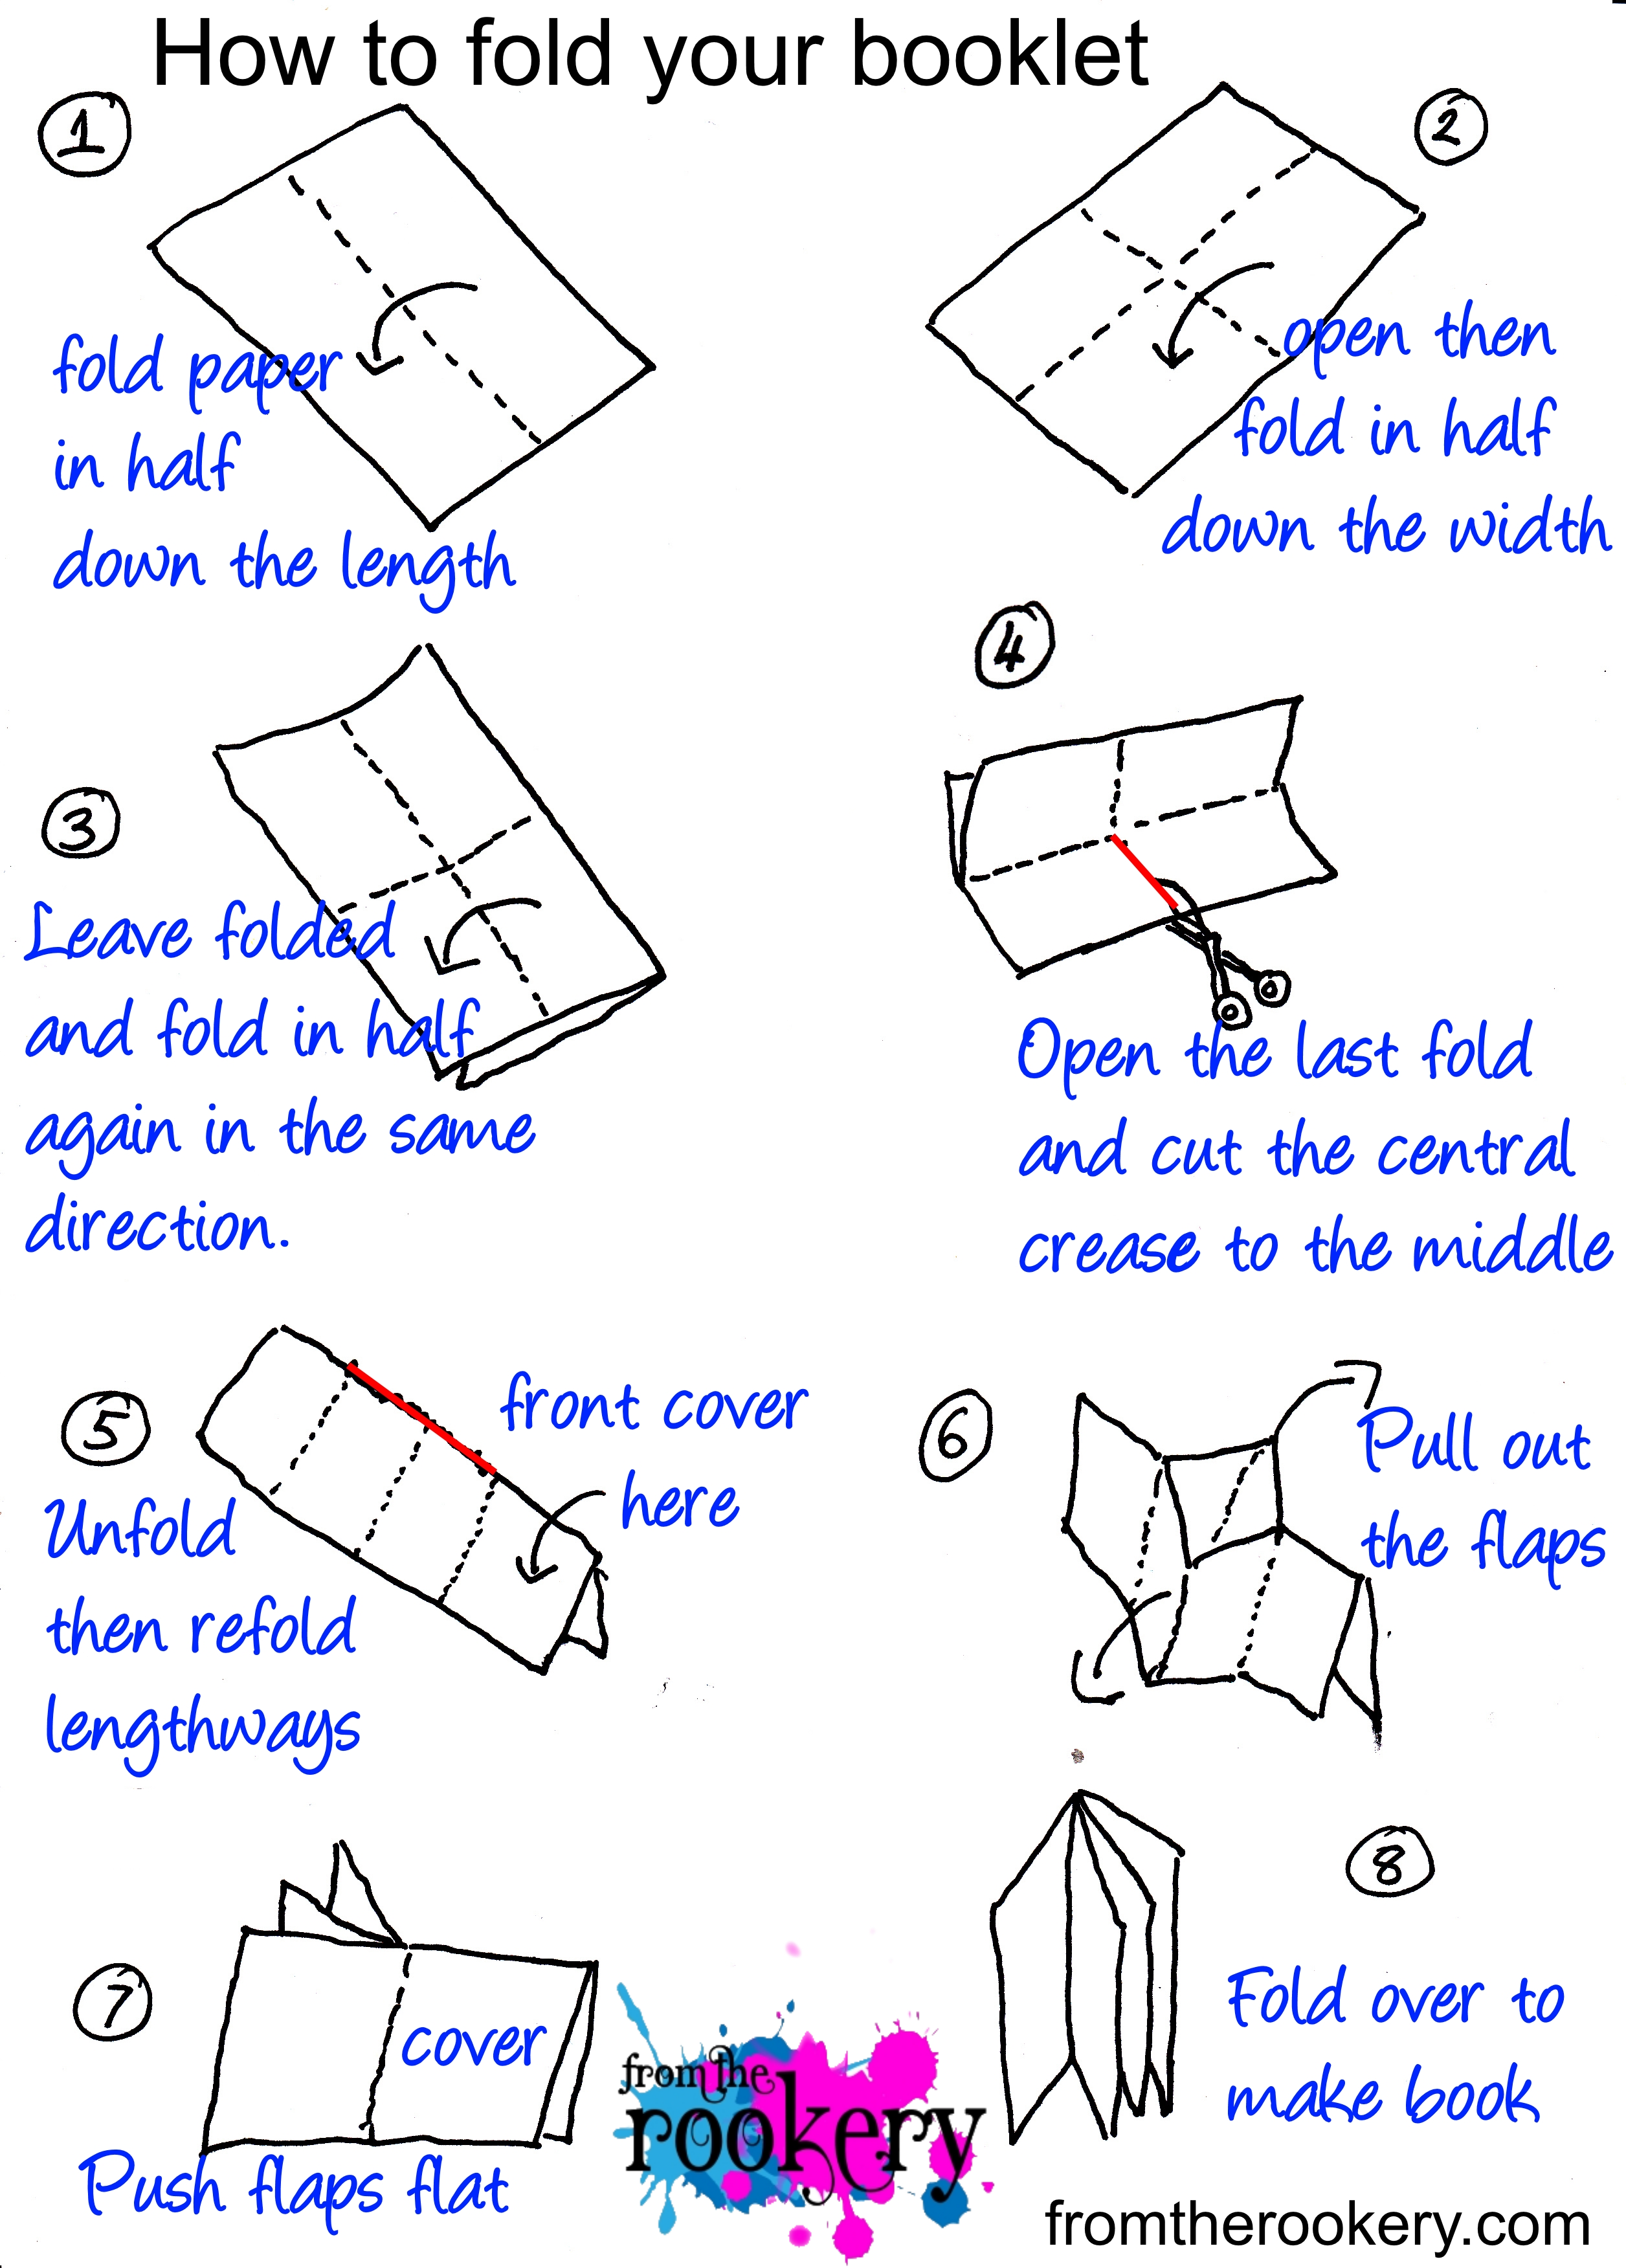 8 page mini booklet folding instructions